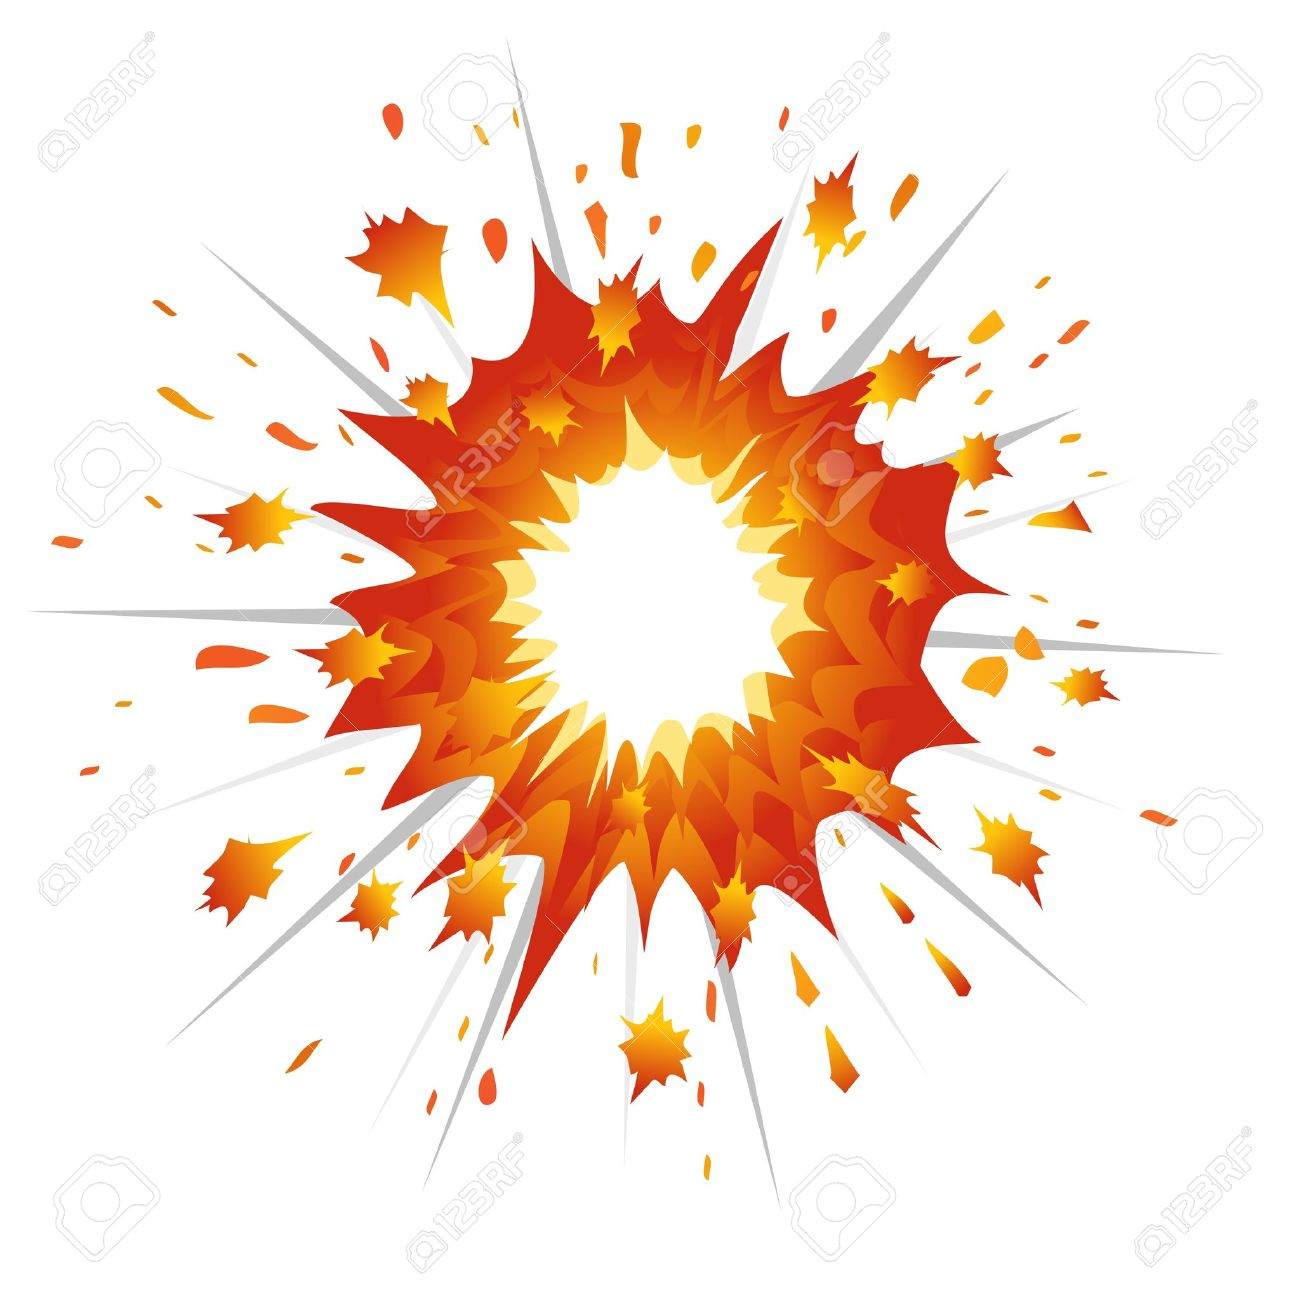 explosions clipart illustration pencil and color #14279